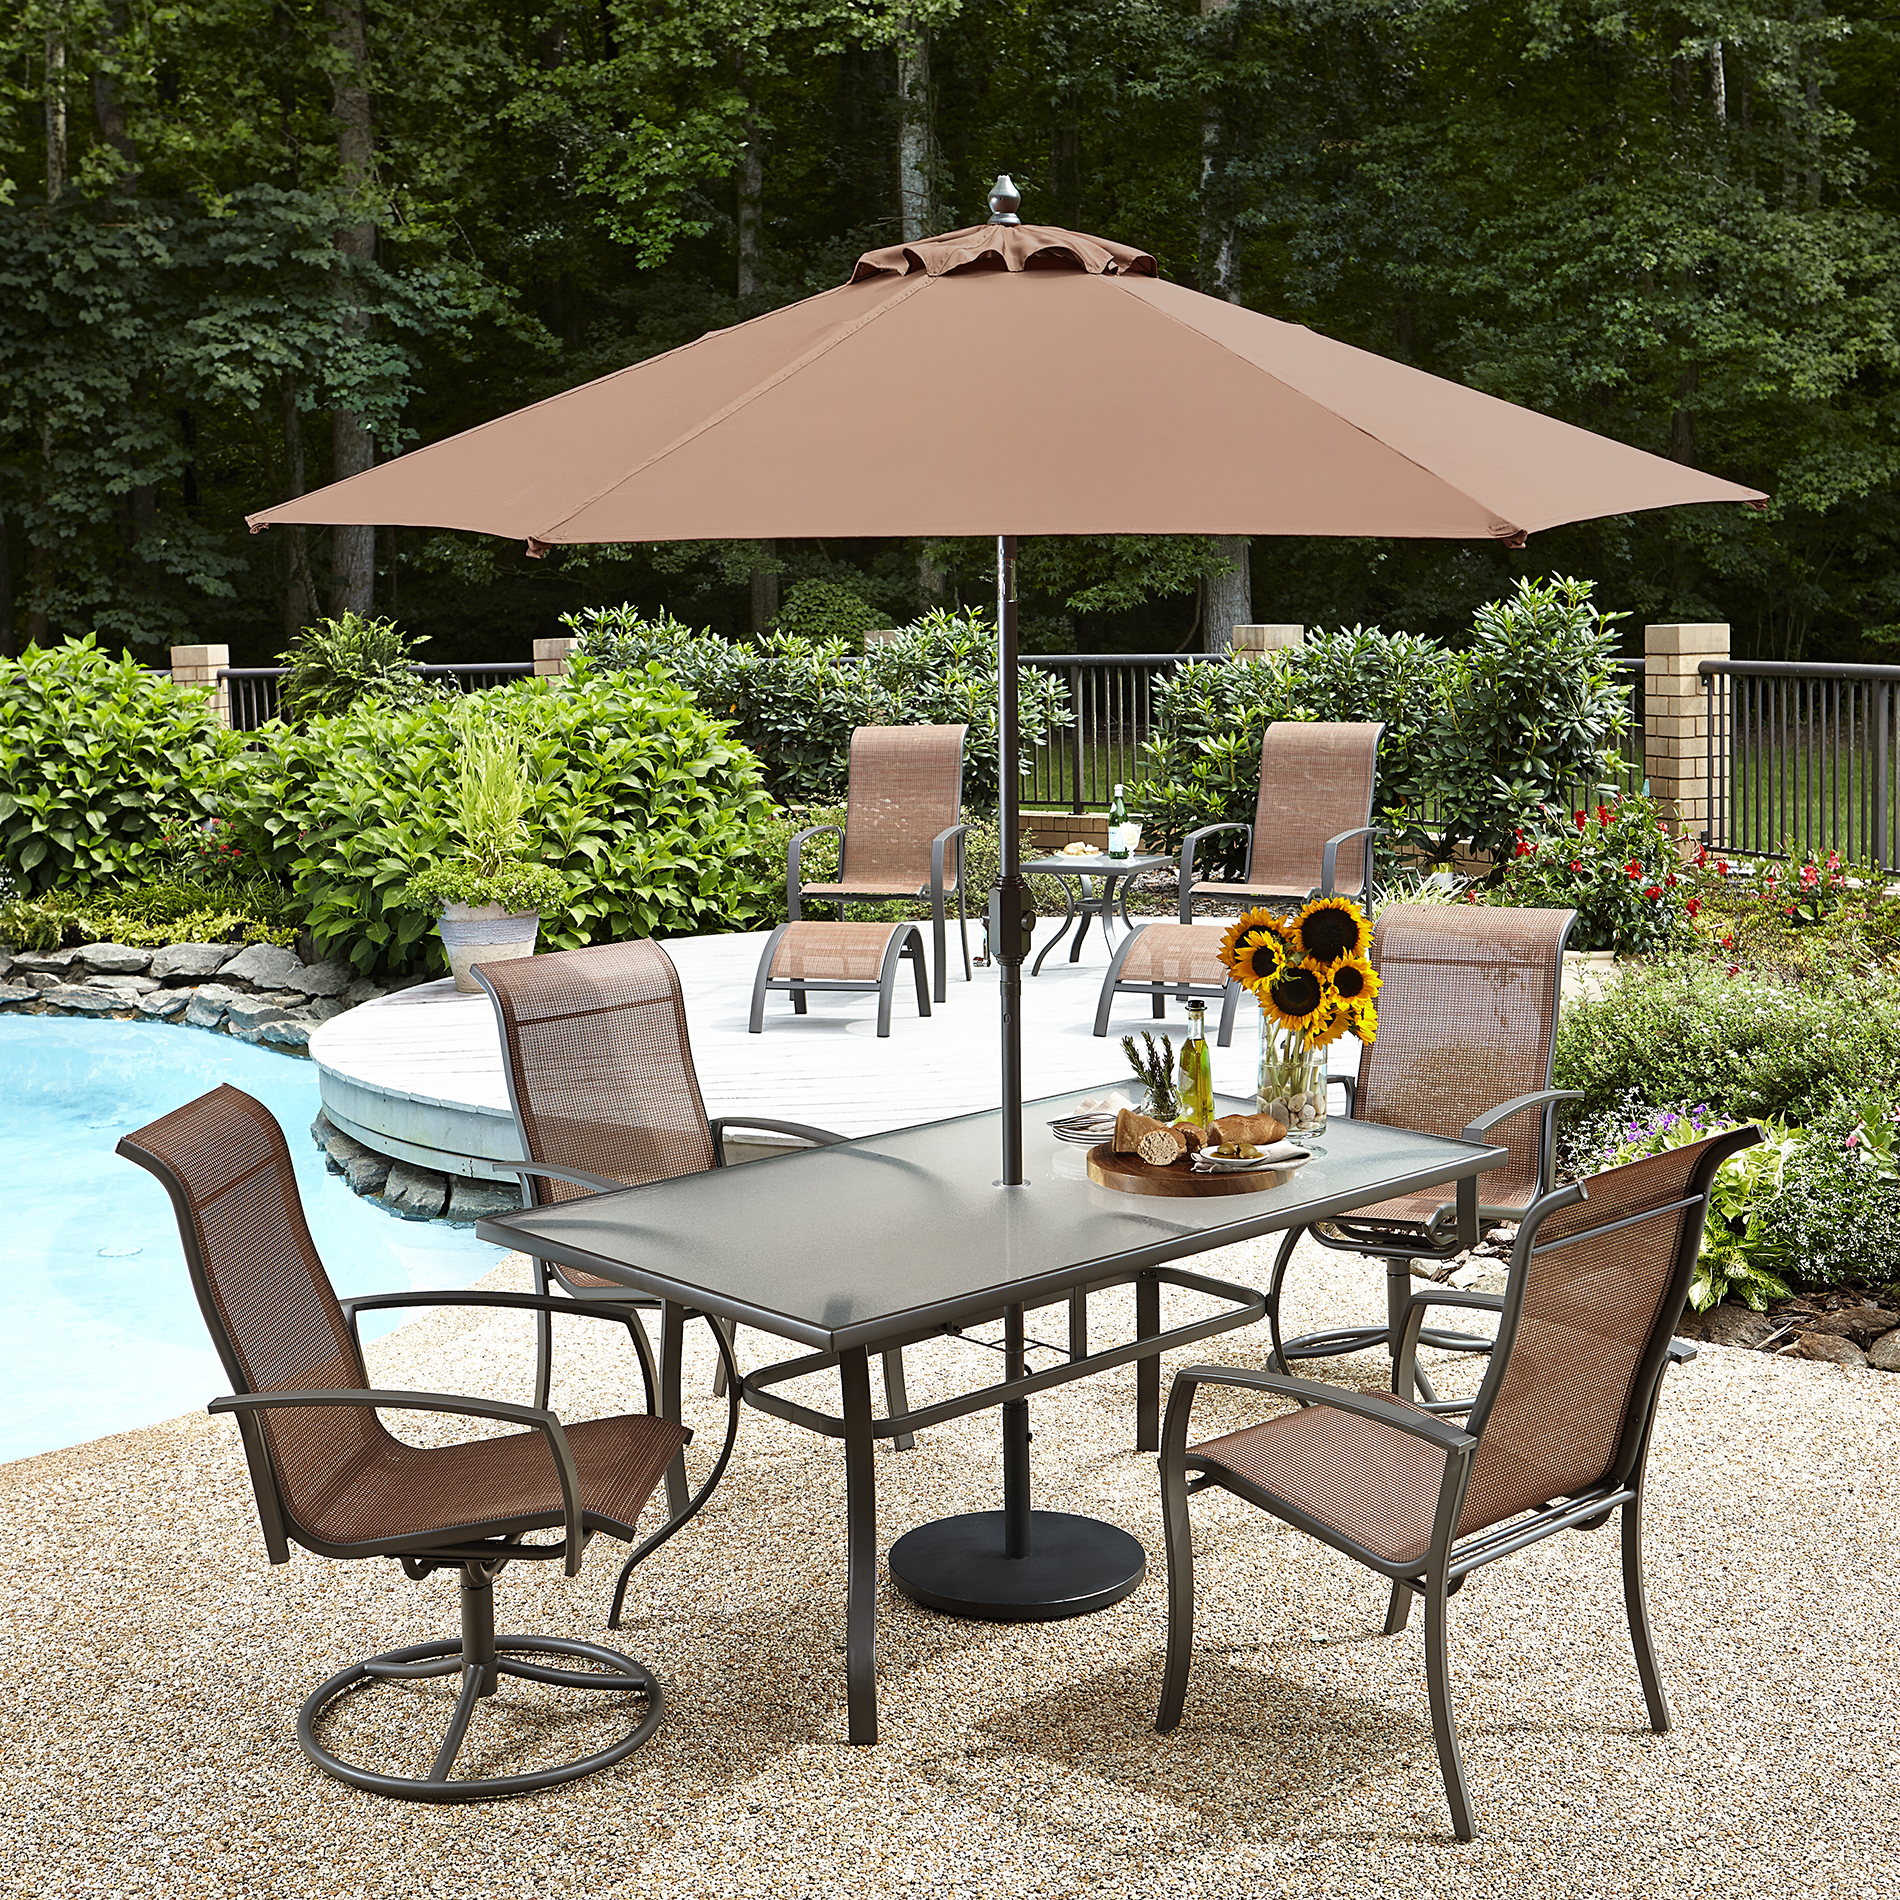 Essential Garden Harley Umbrella 9ft - Outdoor Living